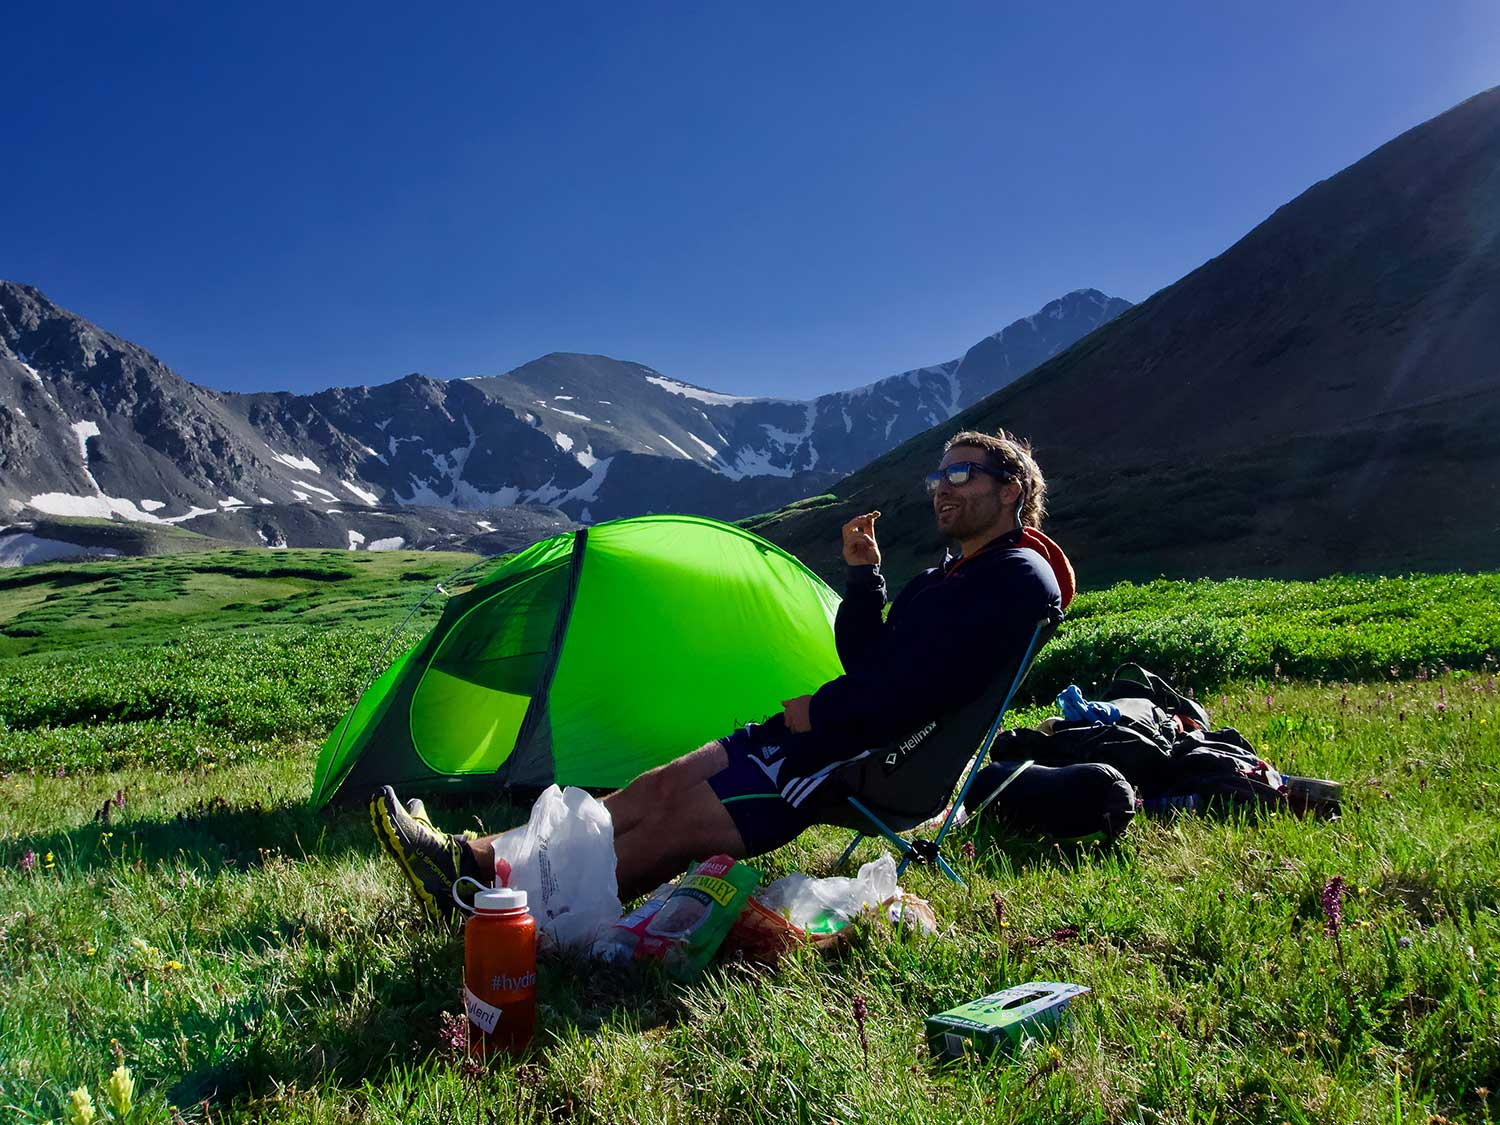 Man eating meal while camping in mountains